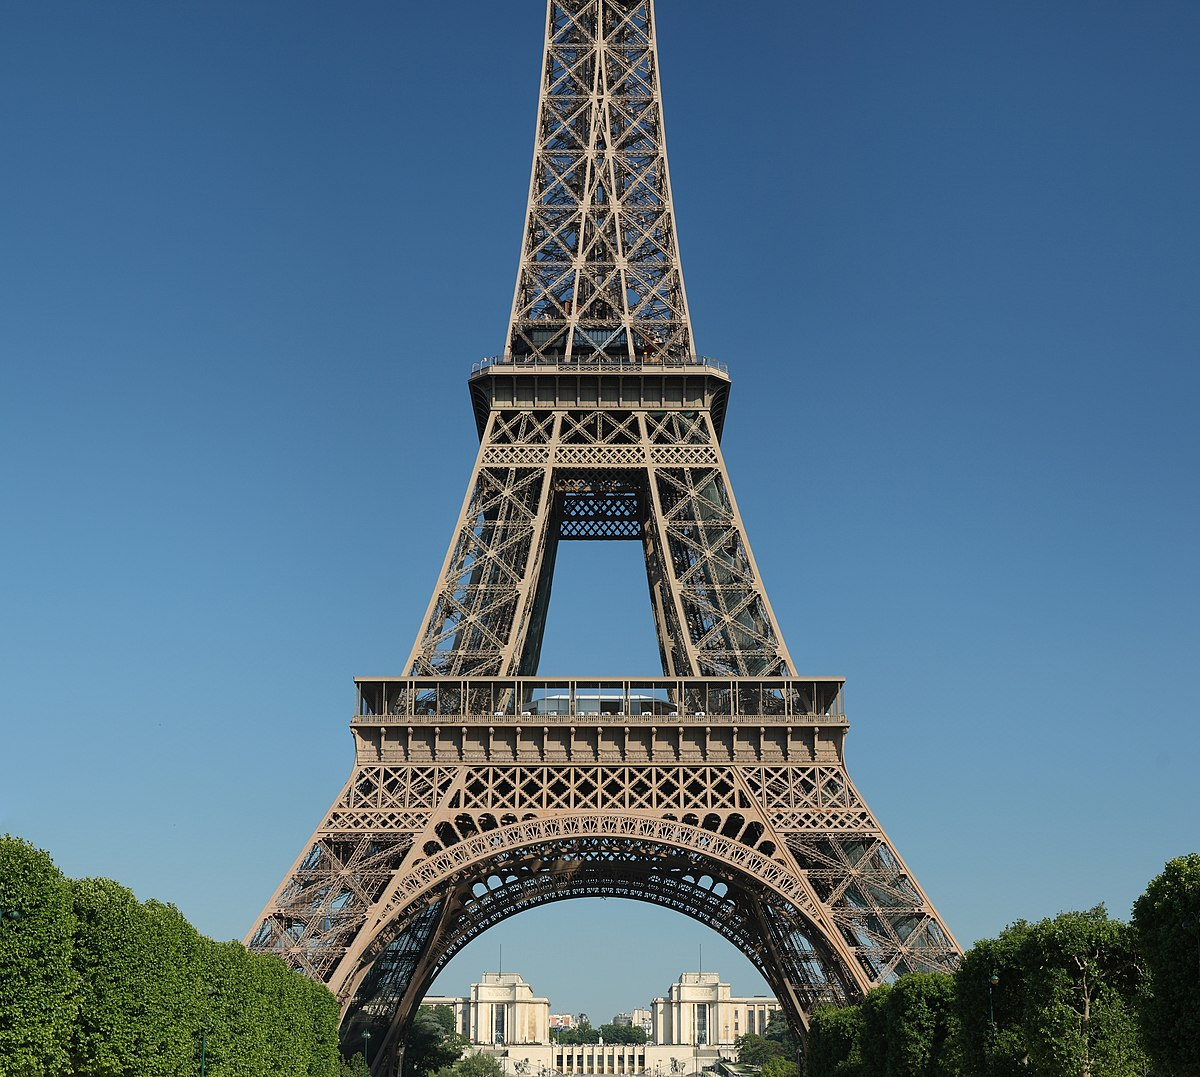 List of the 72 names on the Eiffel Tower